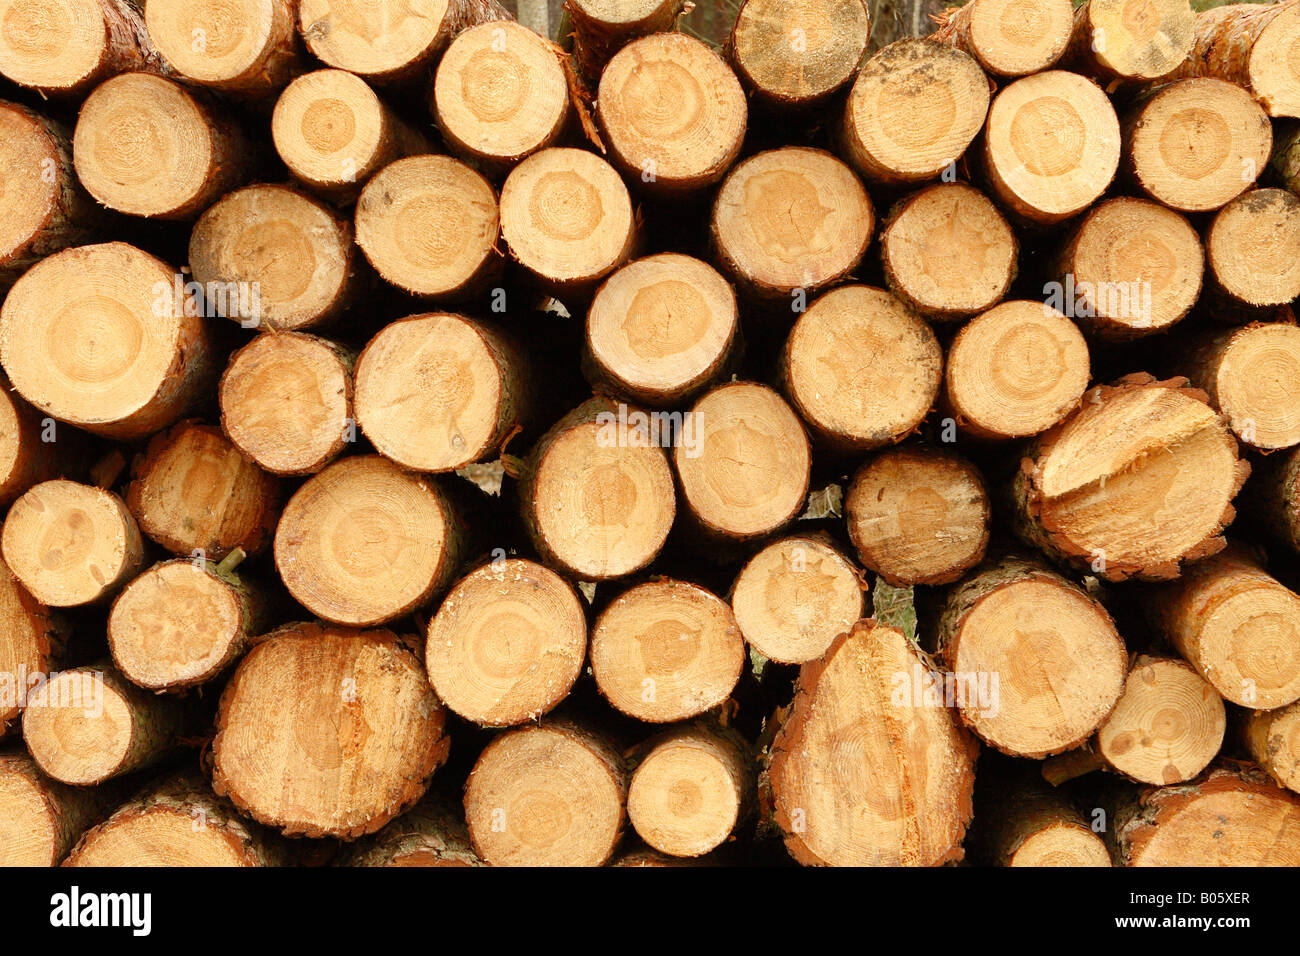 Cut red pine tree trunk timber lumber logs stacked in for Pine tree timber